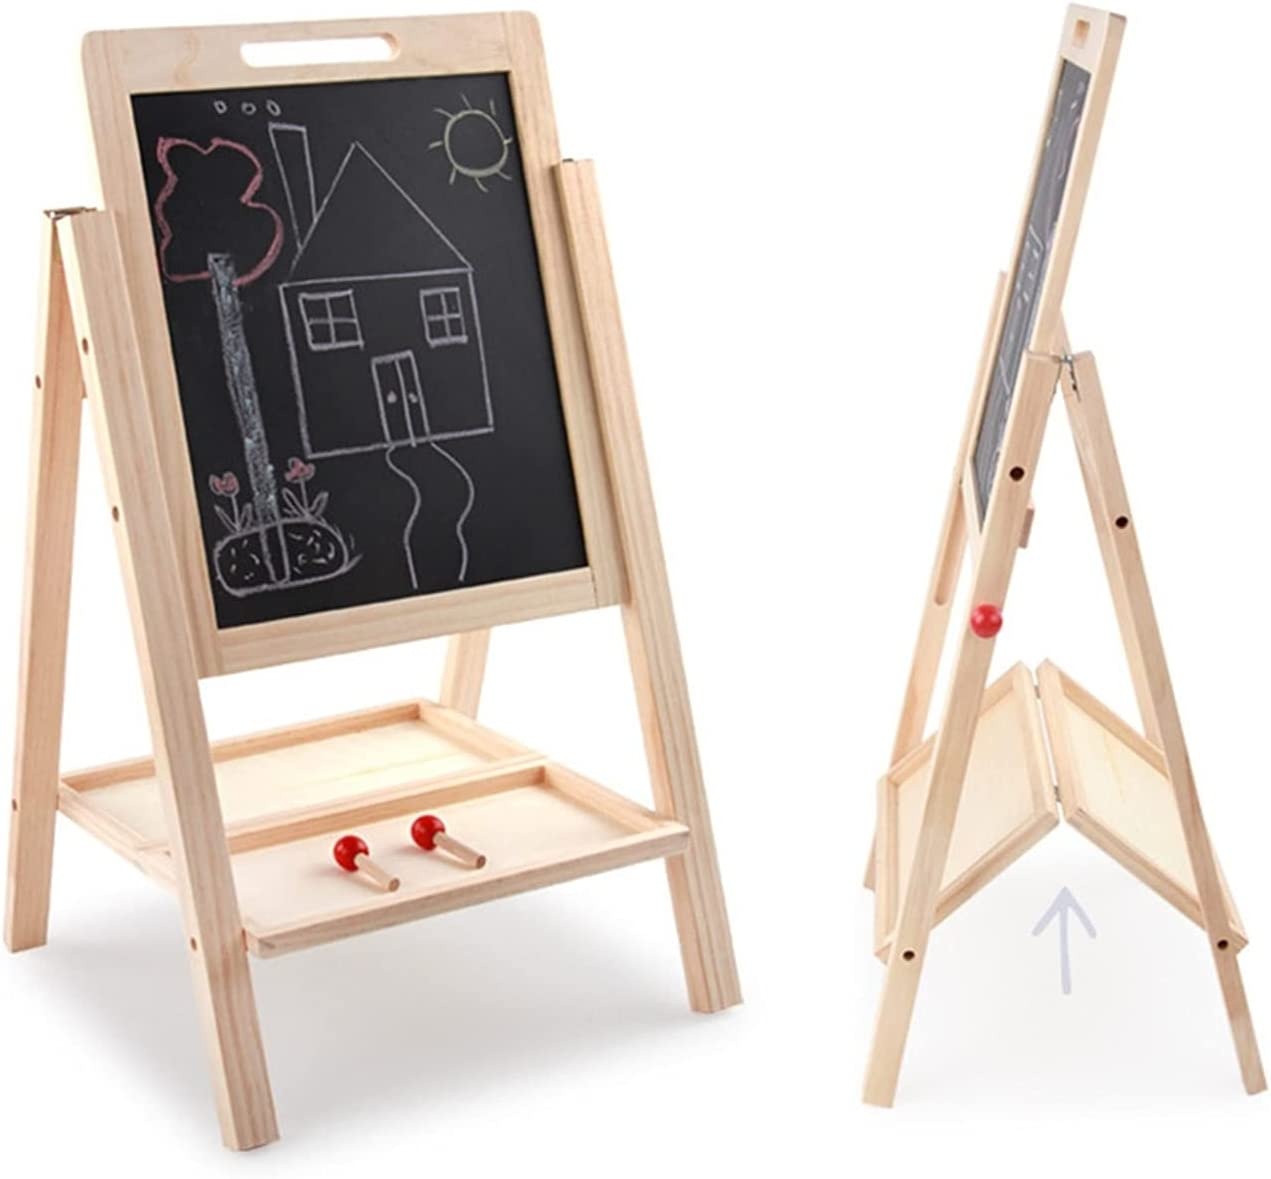 All stores are sold JIAQUAN-SHOP Easel We OFFer at cheap prices Kids Wooden Art Adjustable Eas Standing